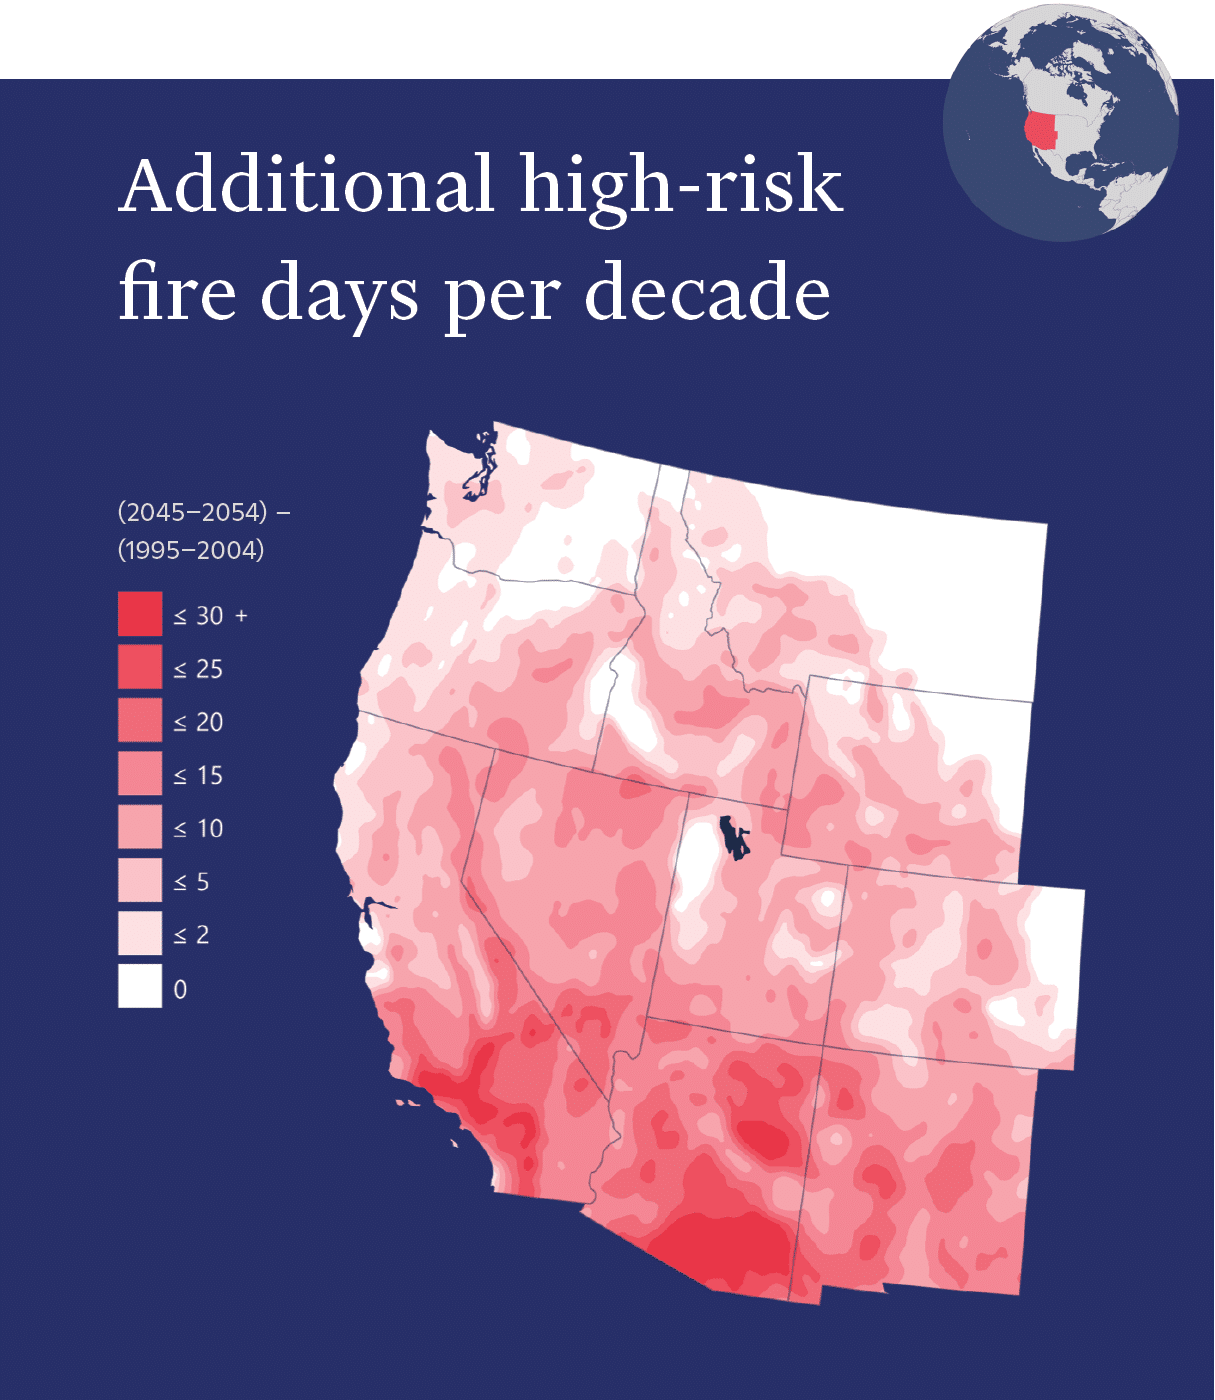 Fire risk map of the western U.S.